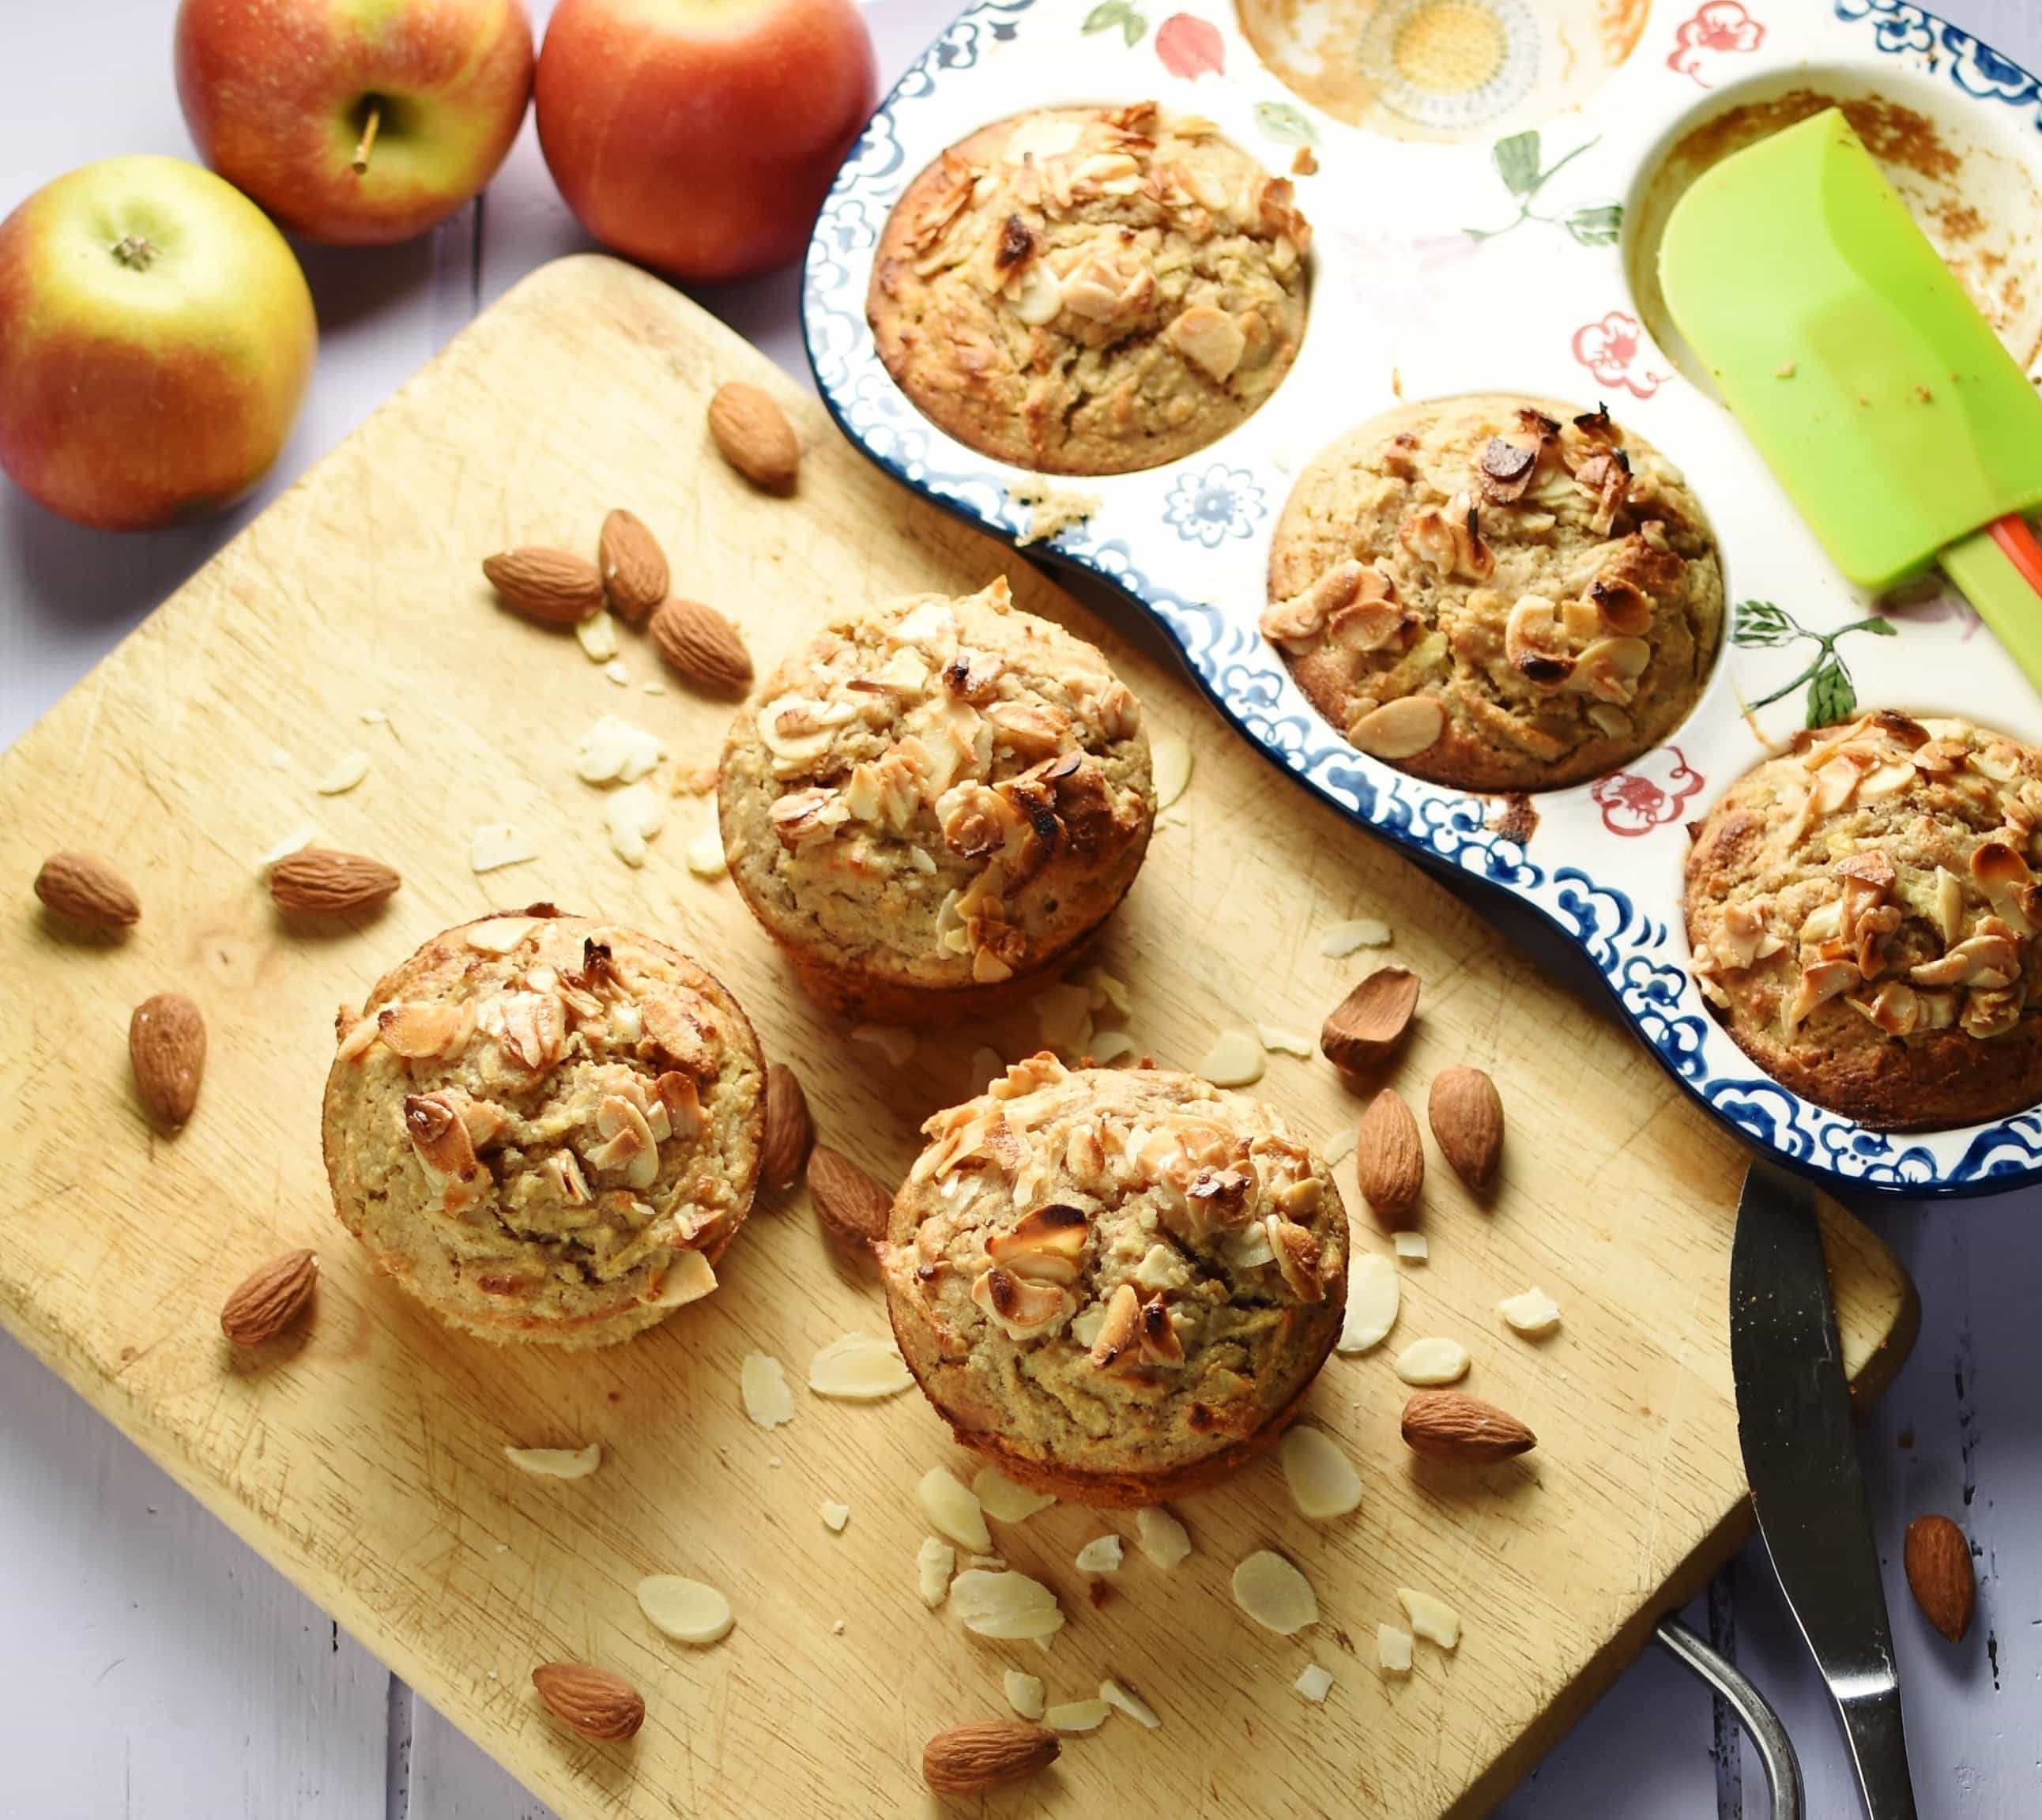 3 muffins with almond flakes on top with almonds on top of wooden board, with 3 more muffins inside ceramic muffin pan and apples in background.